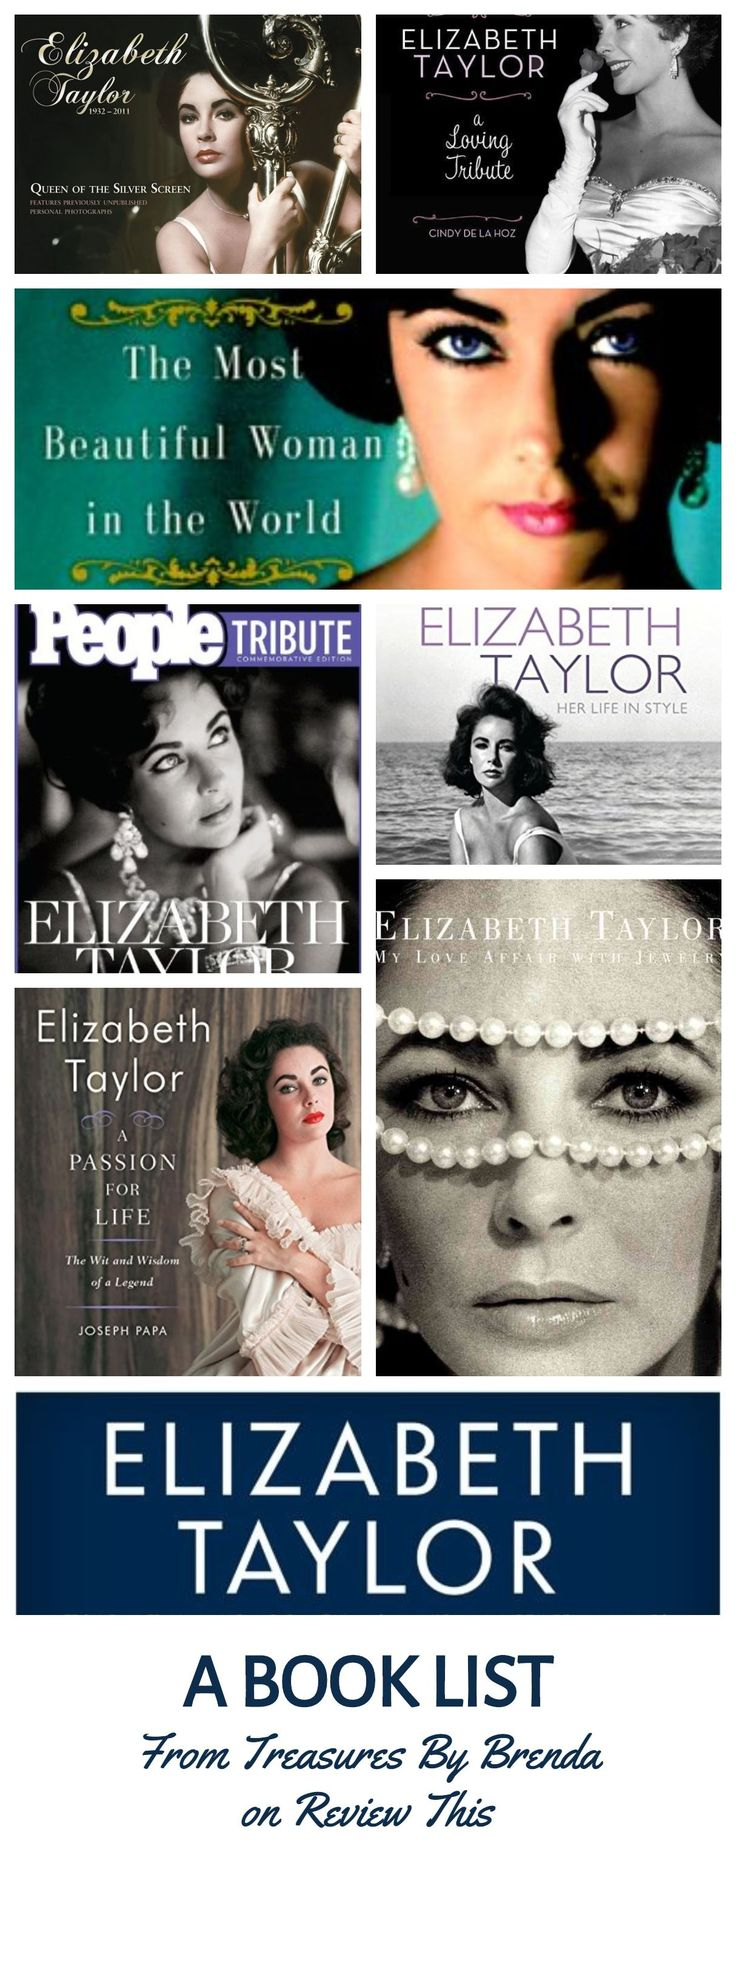 Elizabeth Taylor Book Reviews: A List from @ReviewThisBlogs